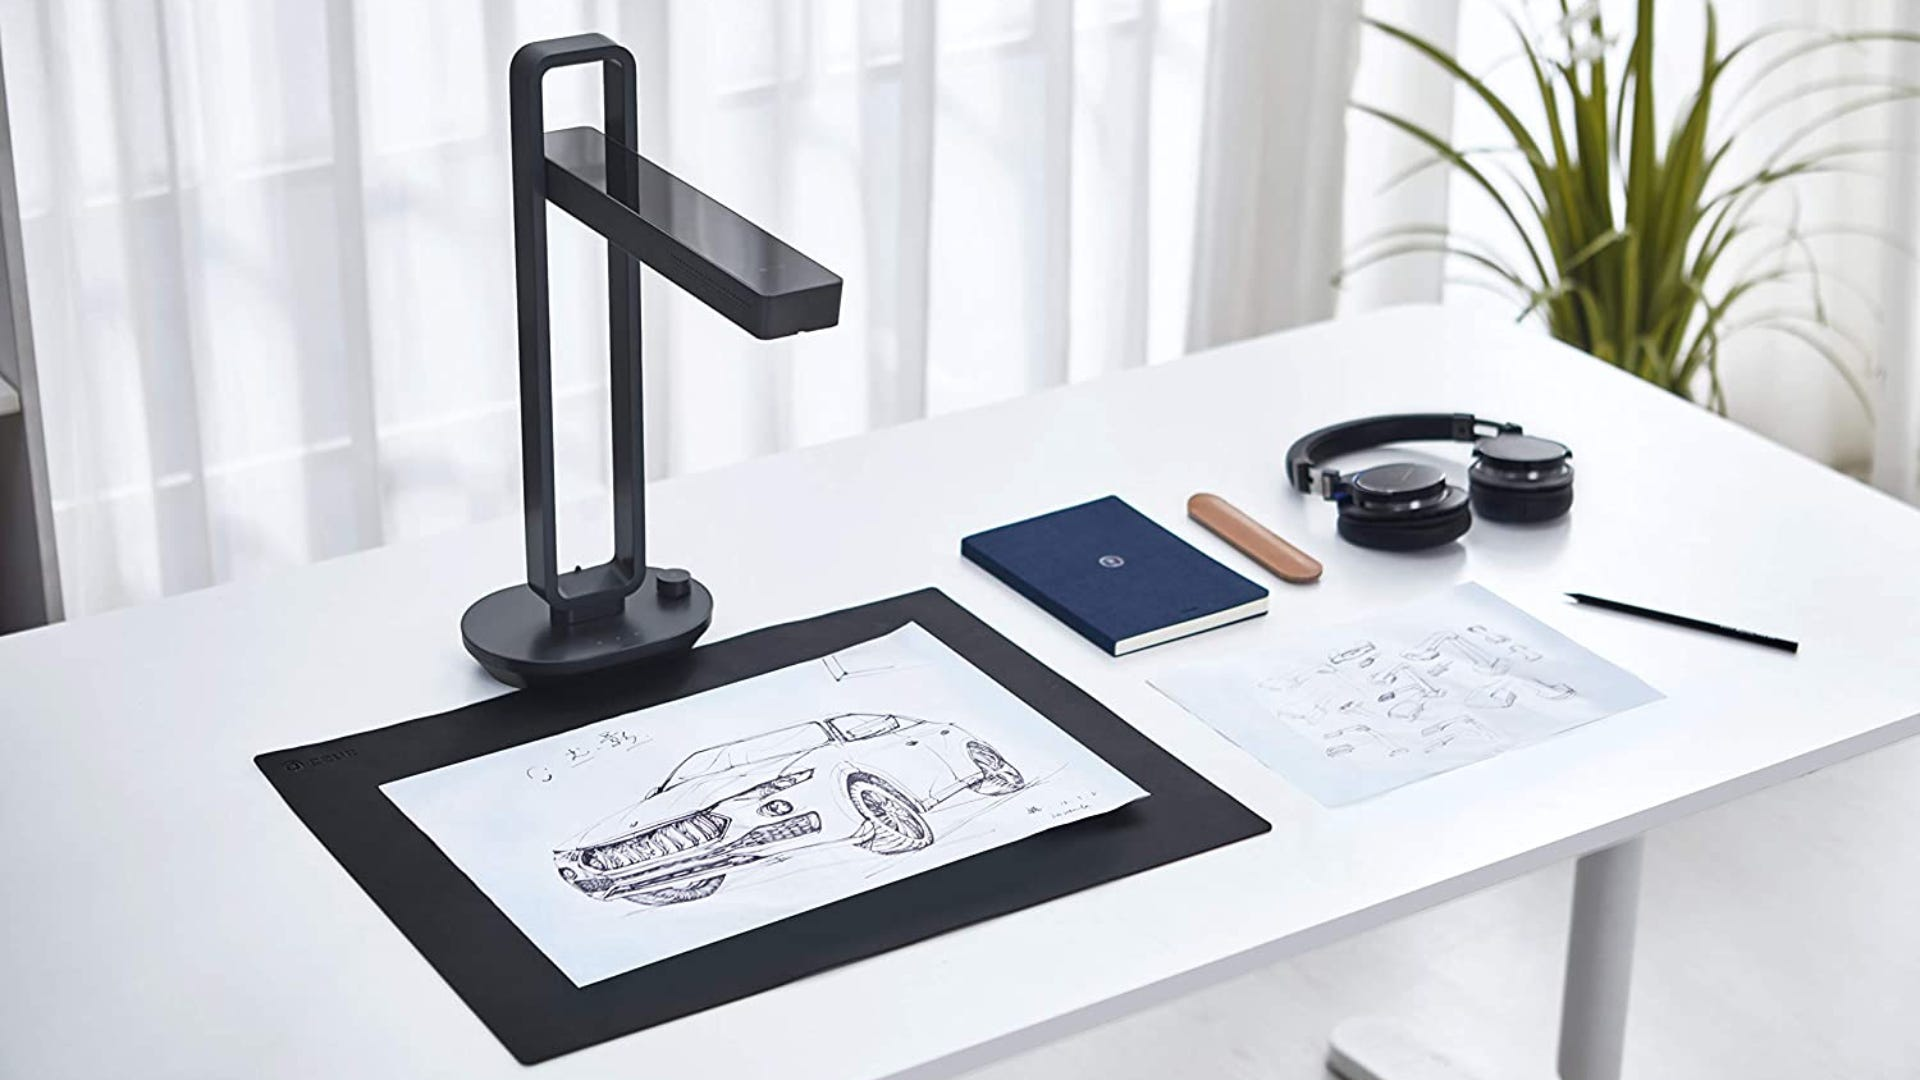 A black document scanner sitting over an art piece on a white desk.